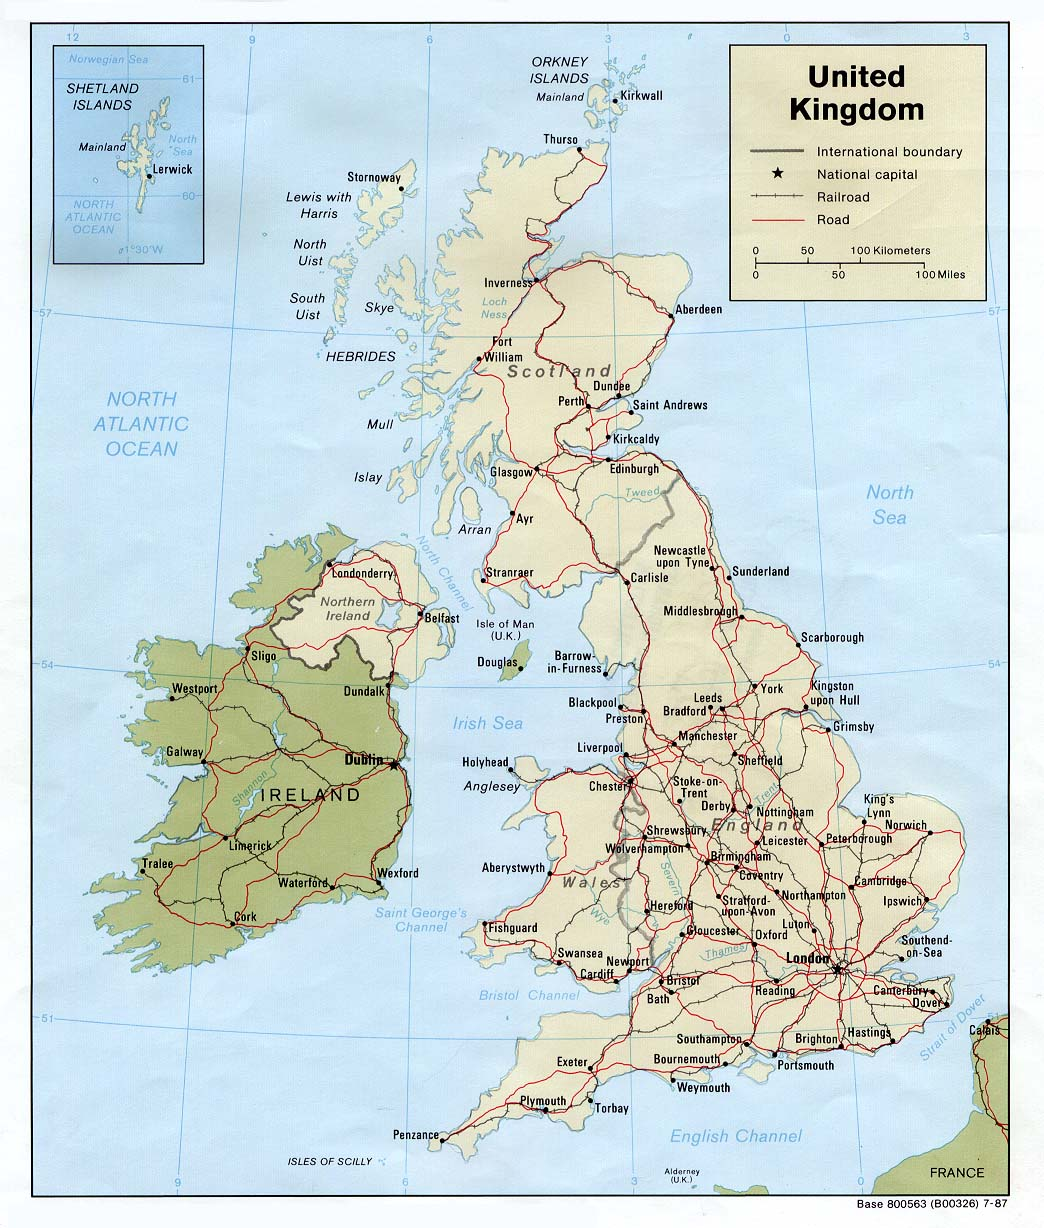 Map Of Uk And Ireland With Cities.Maps Of The United Kingdom Detailed Map Of Great Britain In